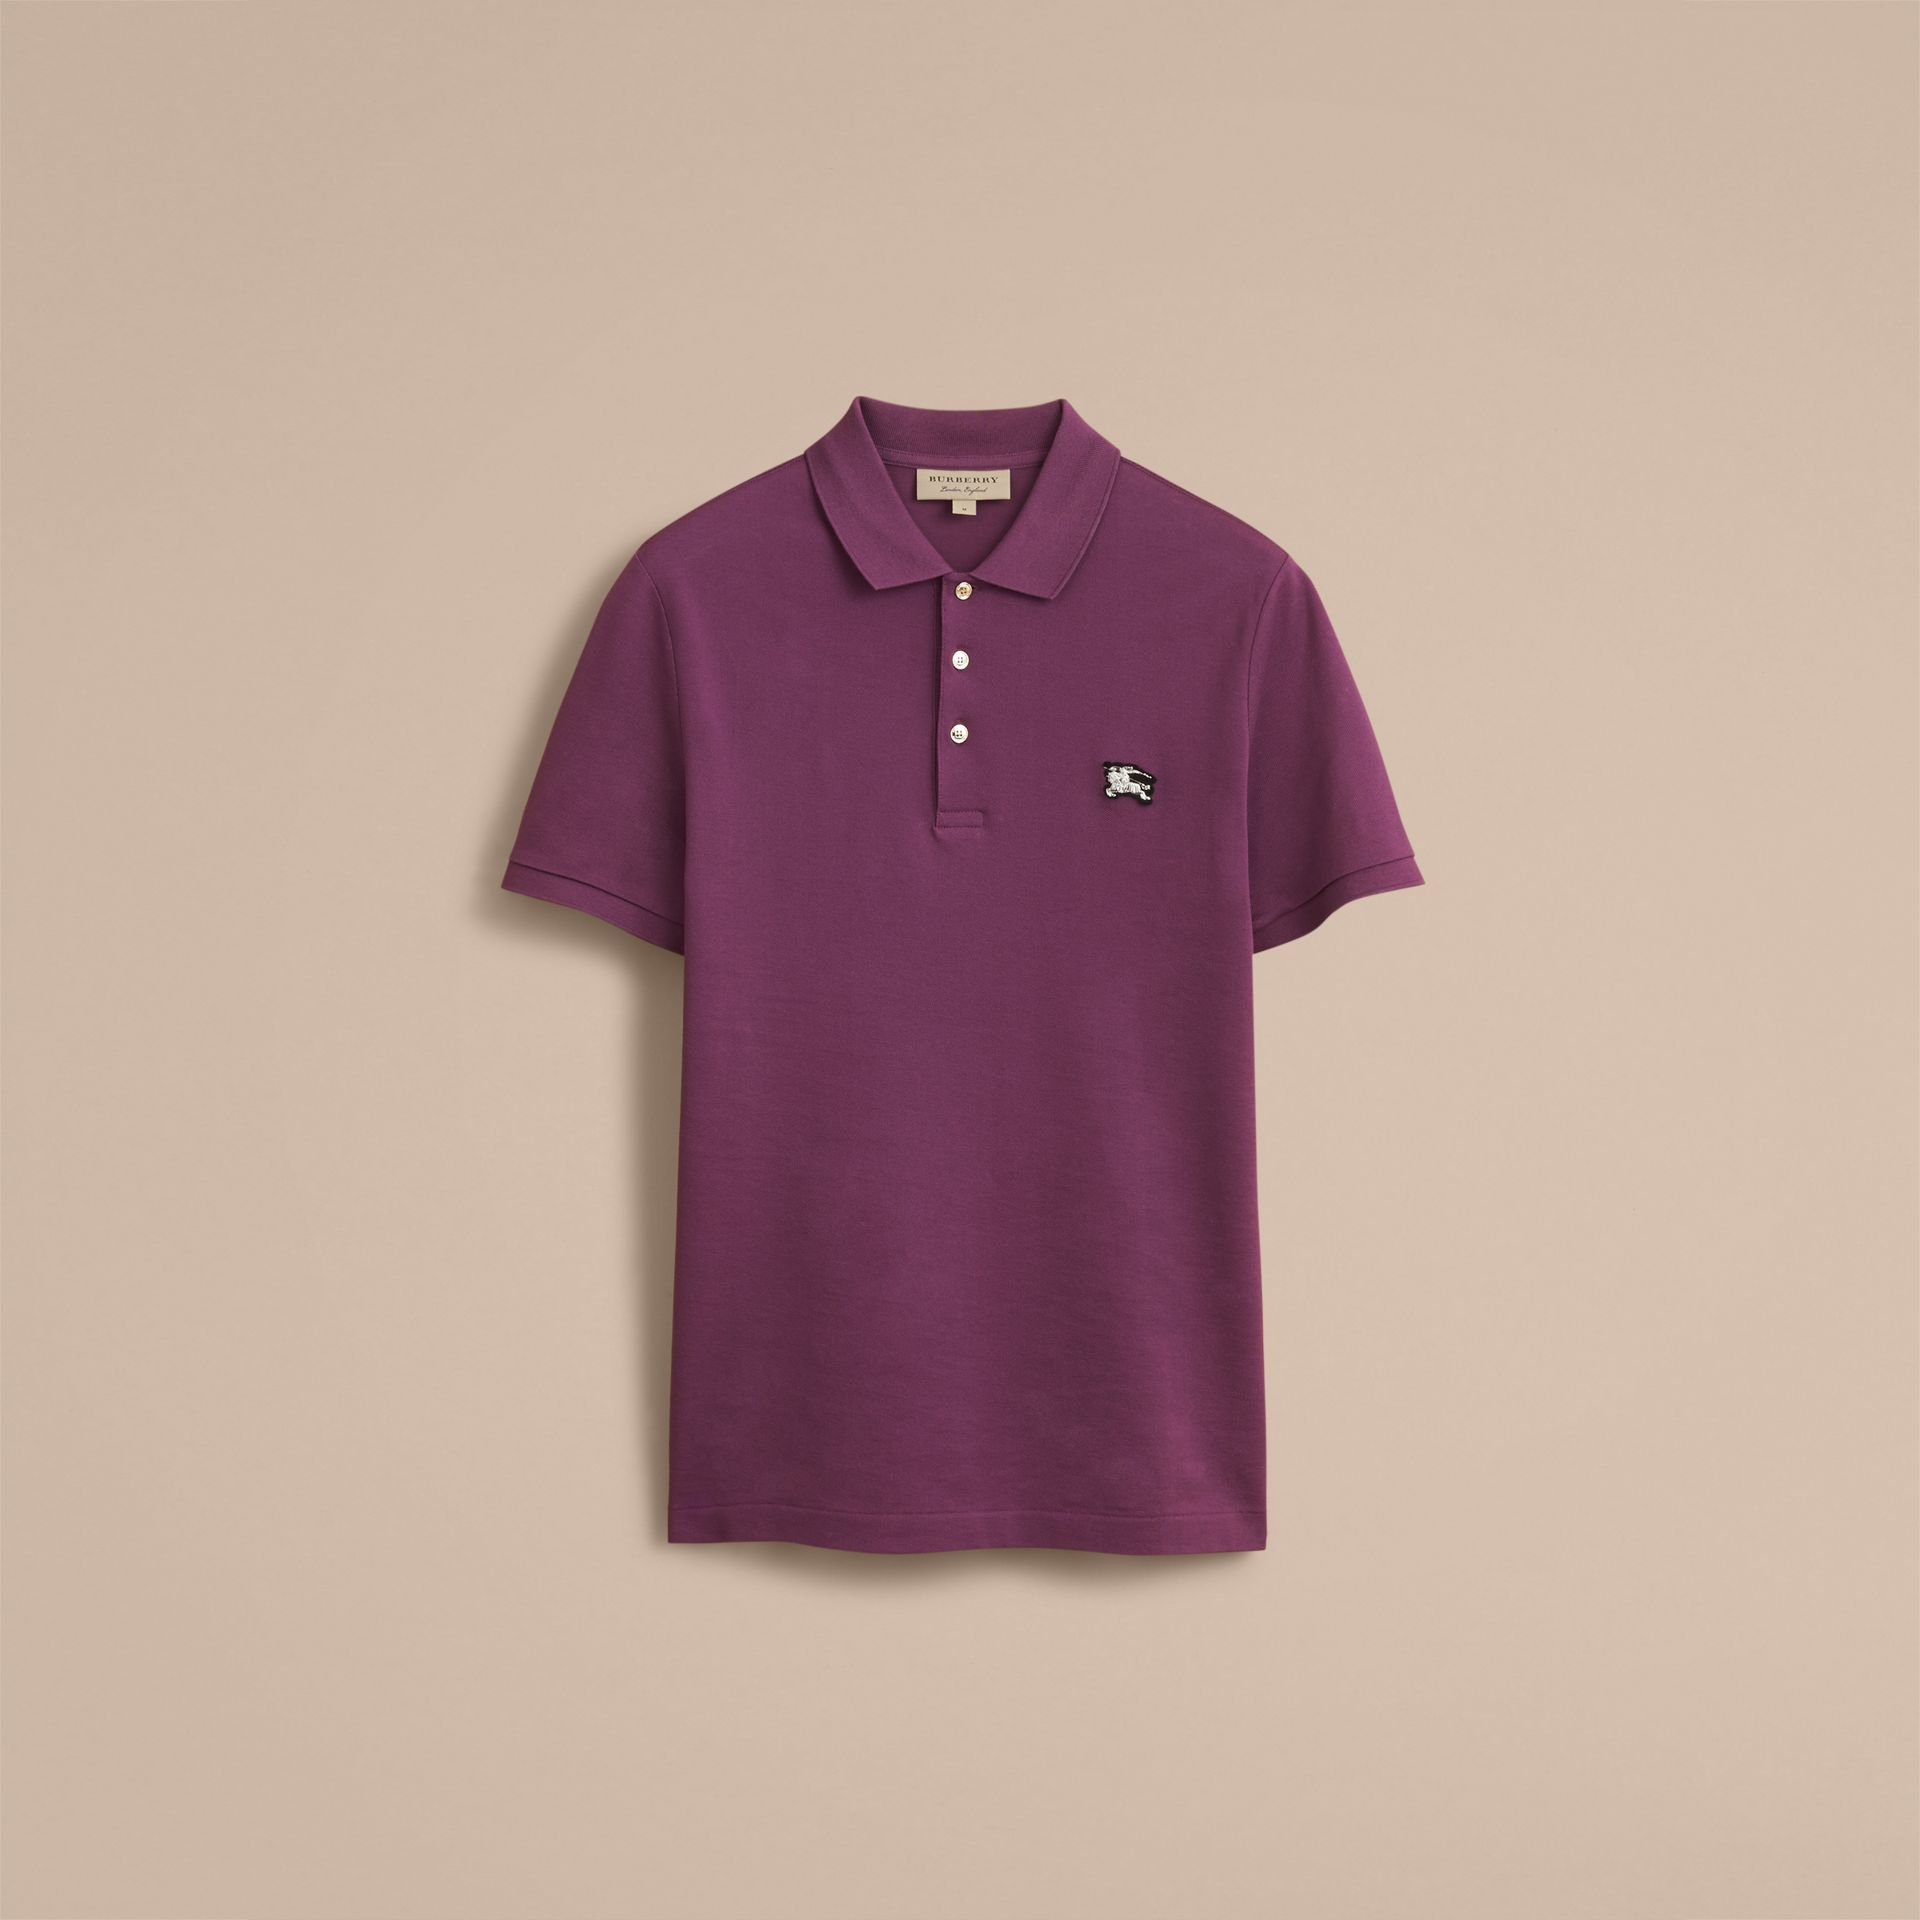 Cotton Piqué Polo Shirt in Heather - Men | Burberry Canada - gallery image 4